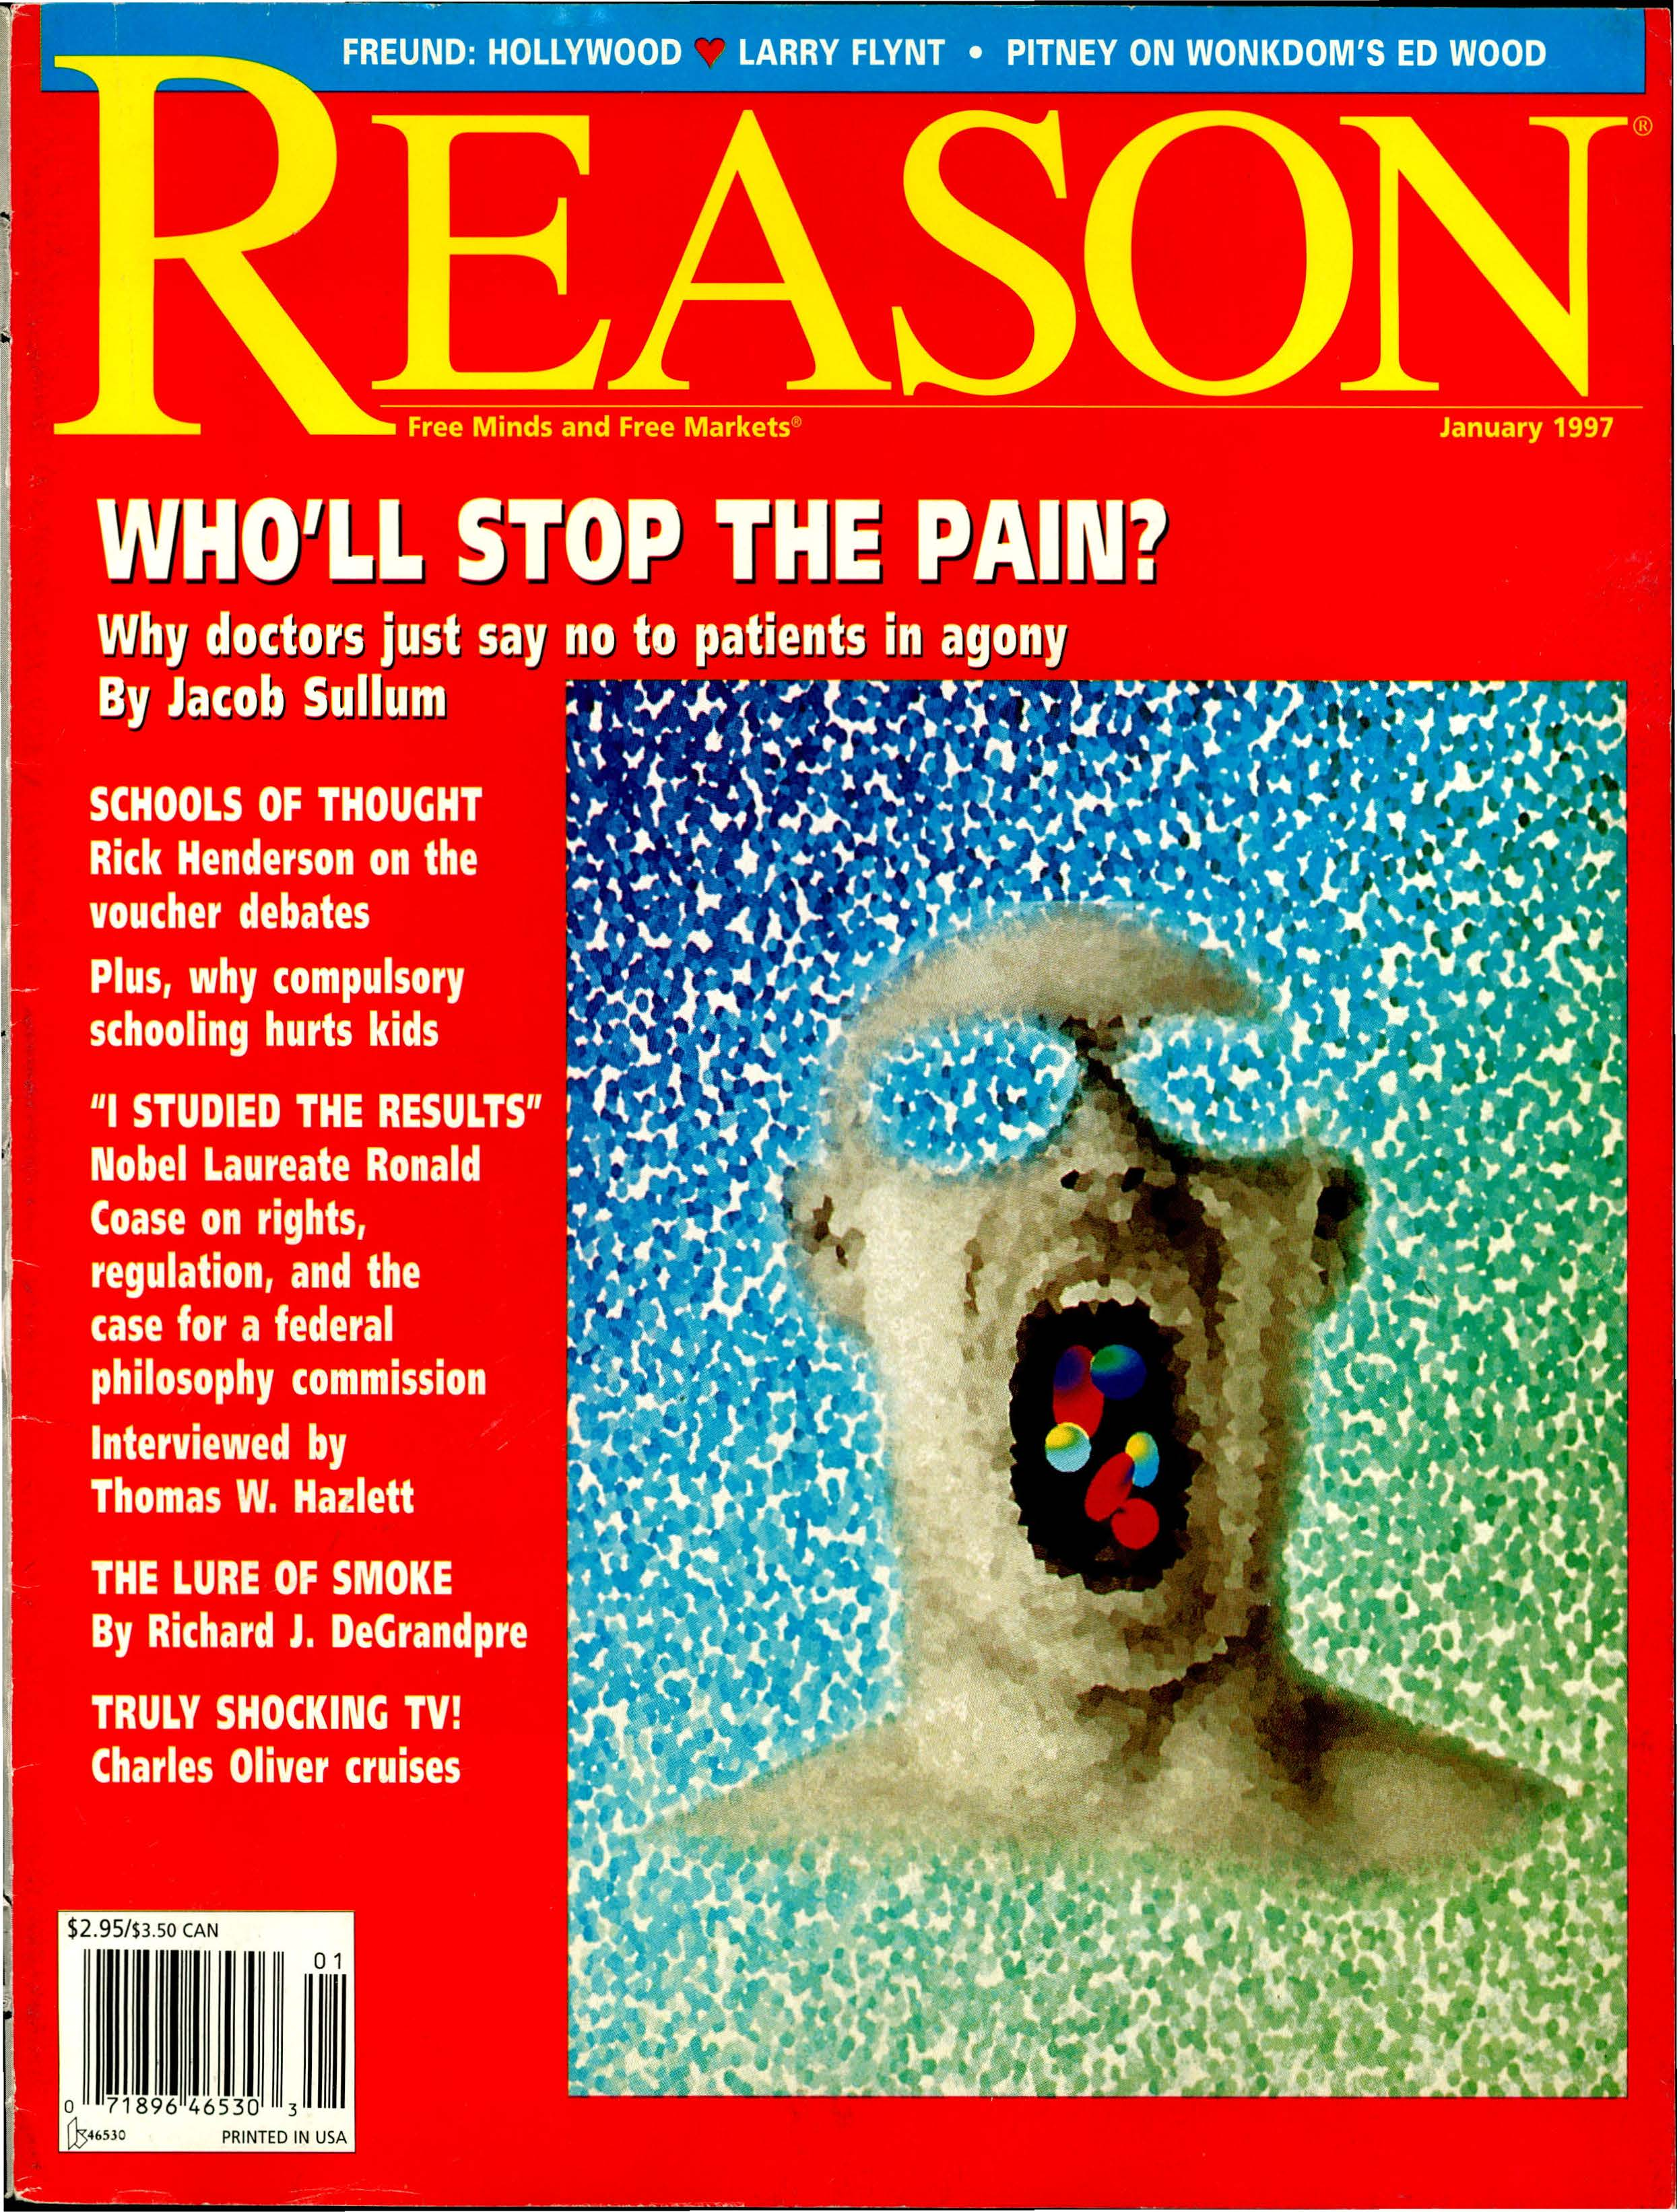 Reason Magazine, January 1997 cover image